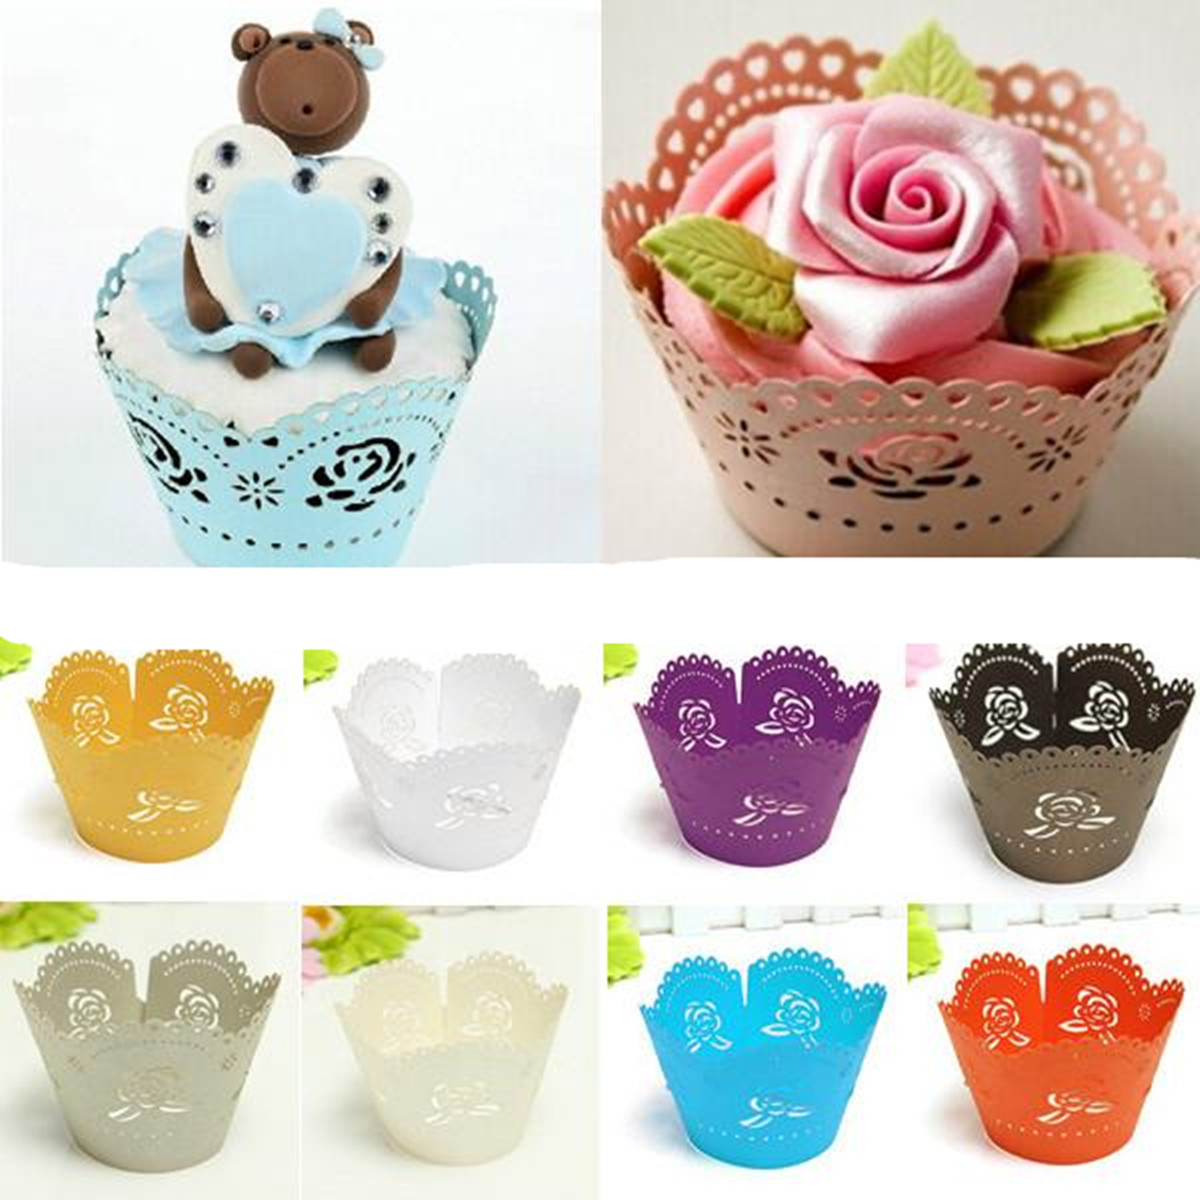 12 pcs Colorful Flower Muffin Cupcake DIY Wrapper Wrap Liners Cases Wedding Birthday Baby Shower Accessories